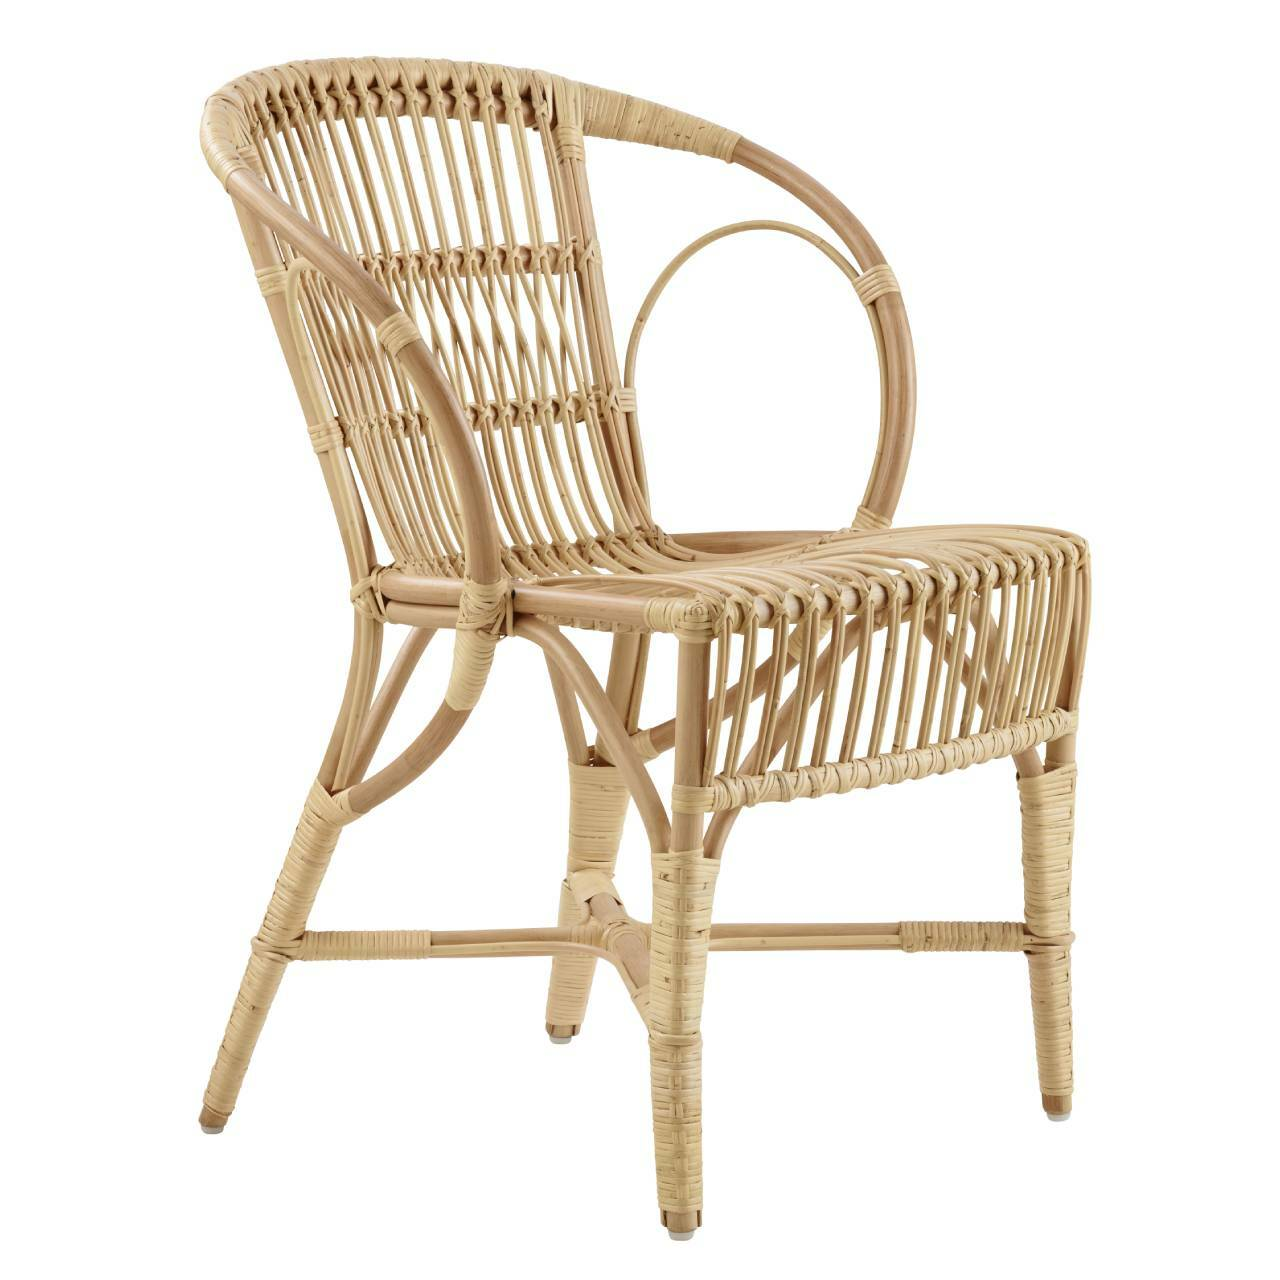 Sika, Wengler Chair, Polished Natural- Placewares